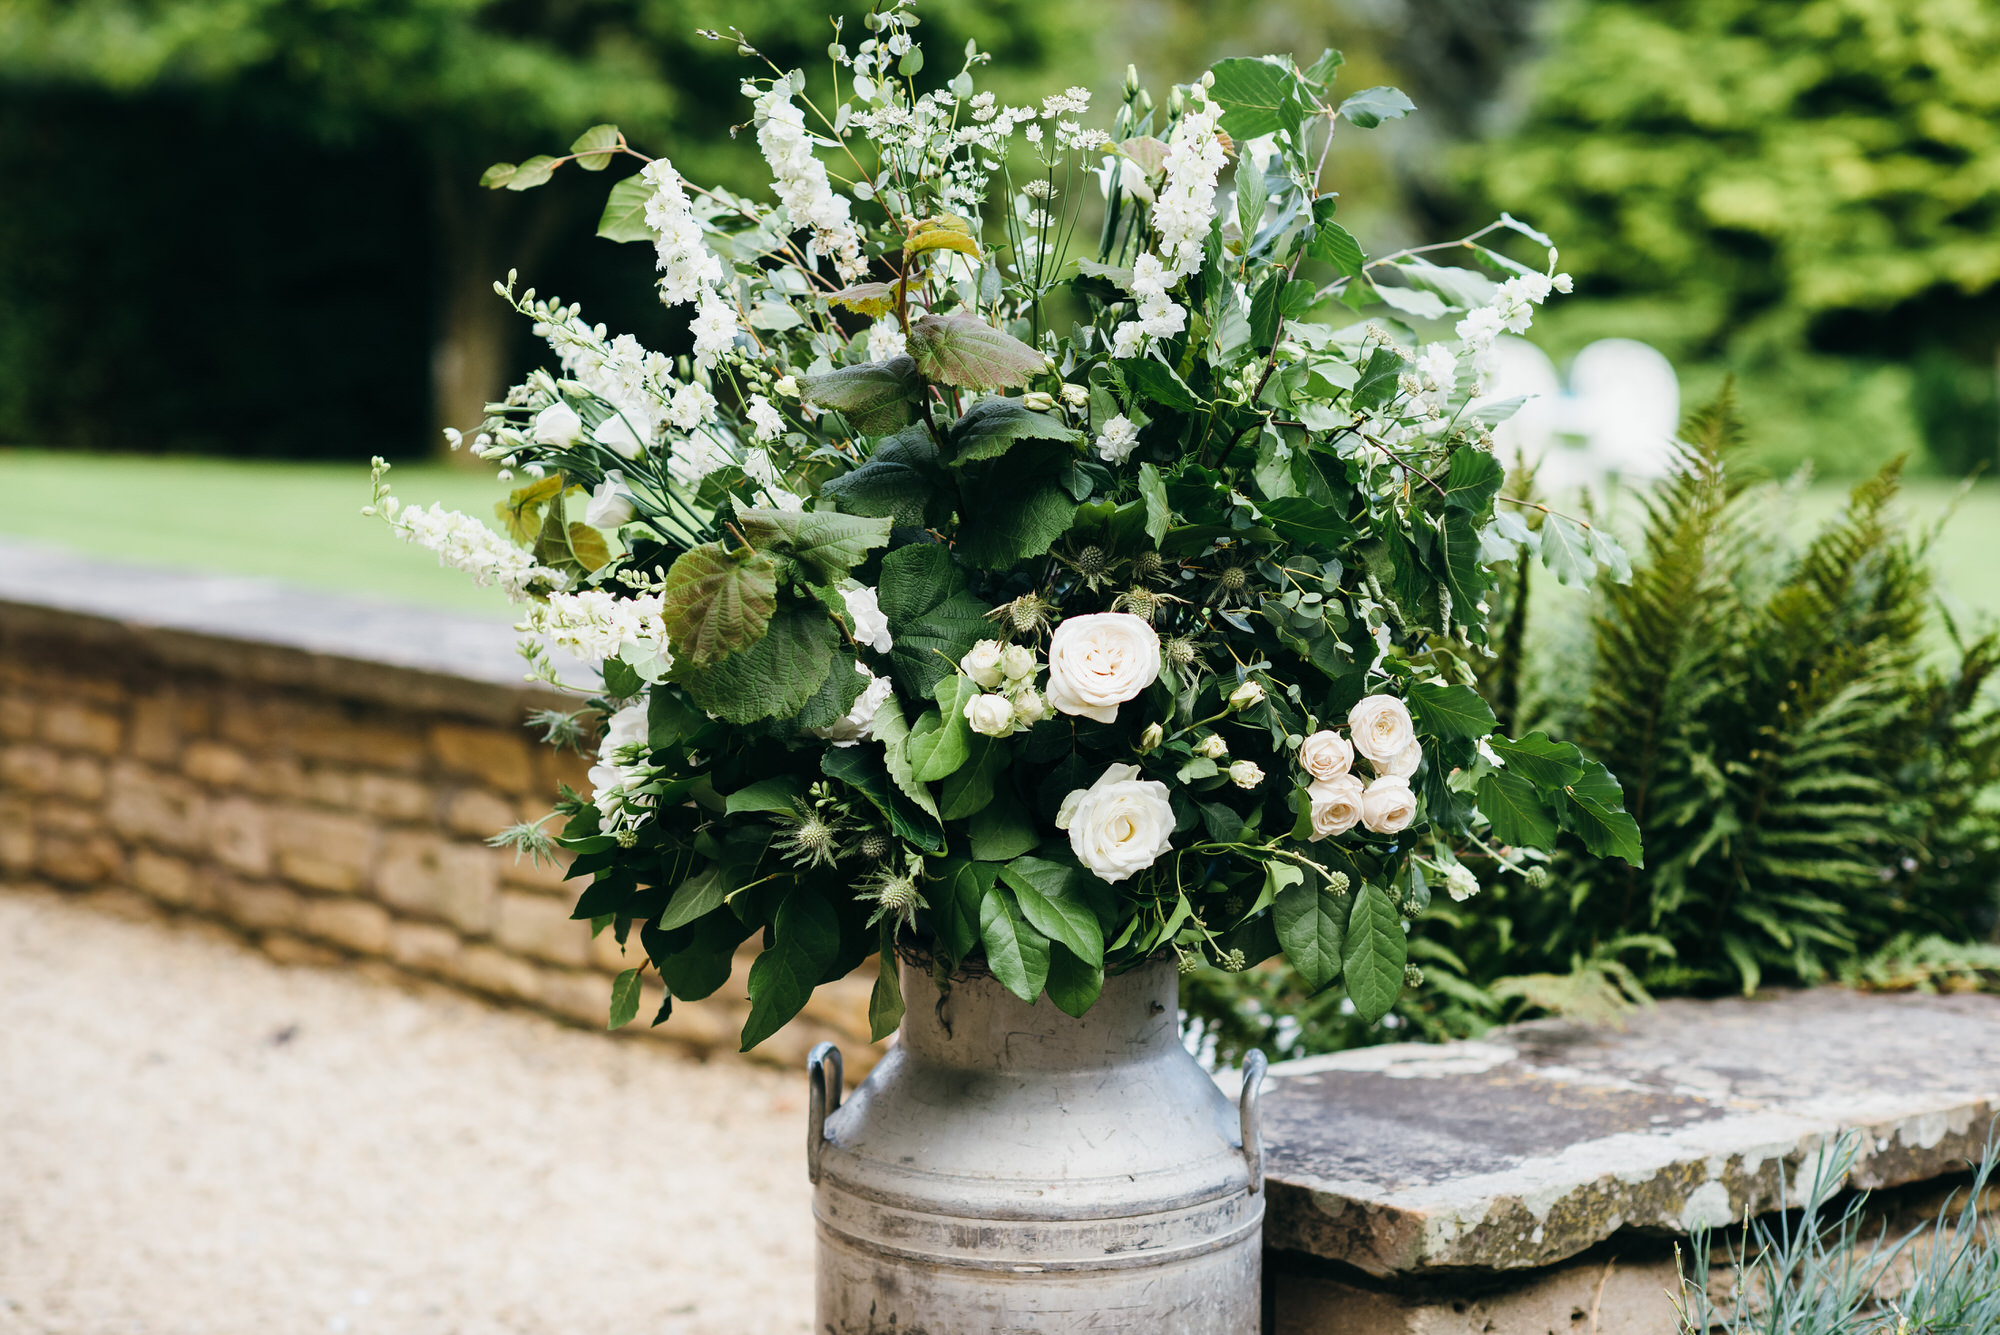 Wedding floristry ideas